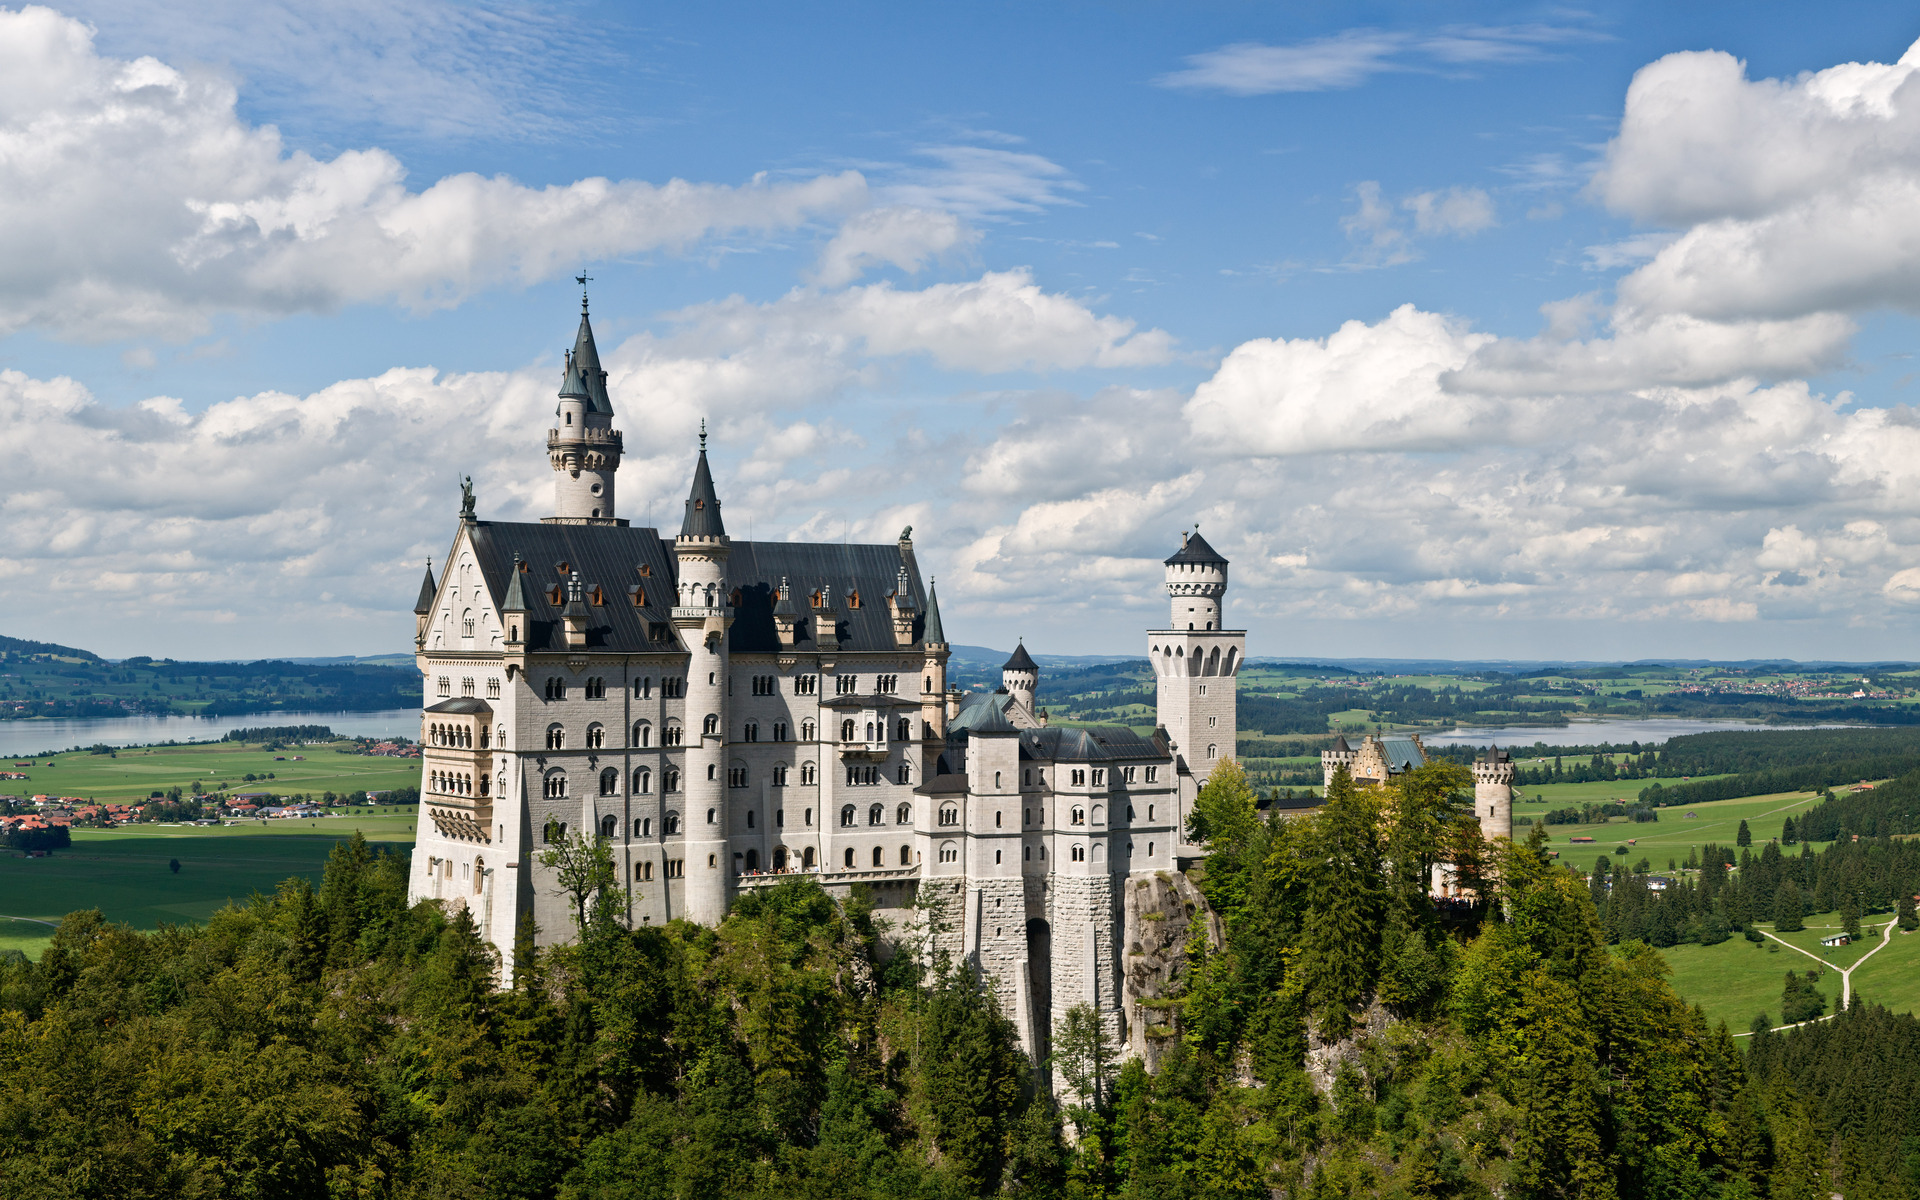 neuschwanstein castle by desktop wallpaper. Black Bedroom Furniture Sets. Home Design Ideas